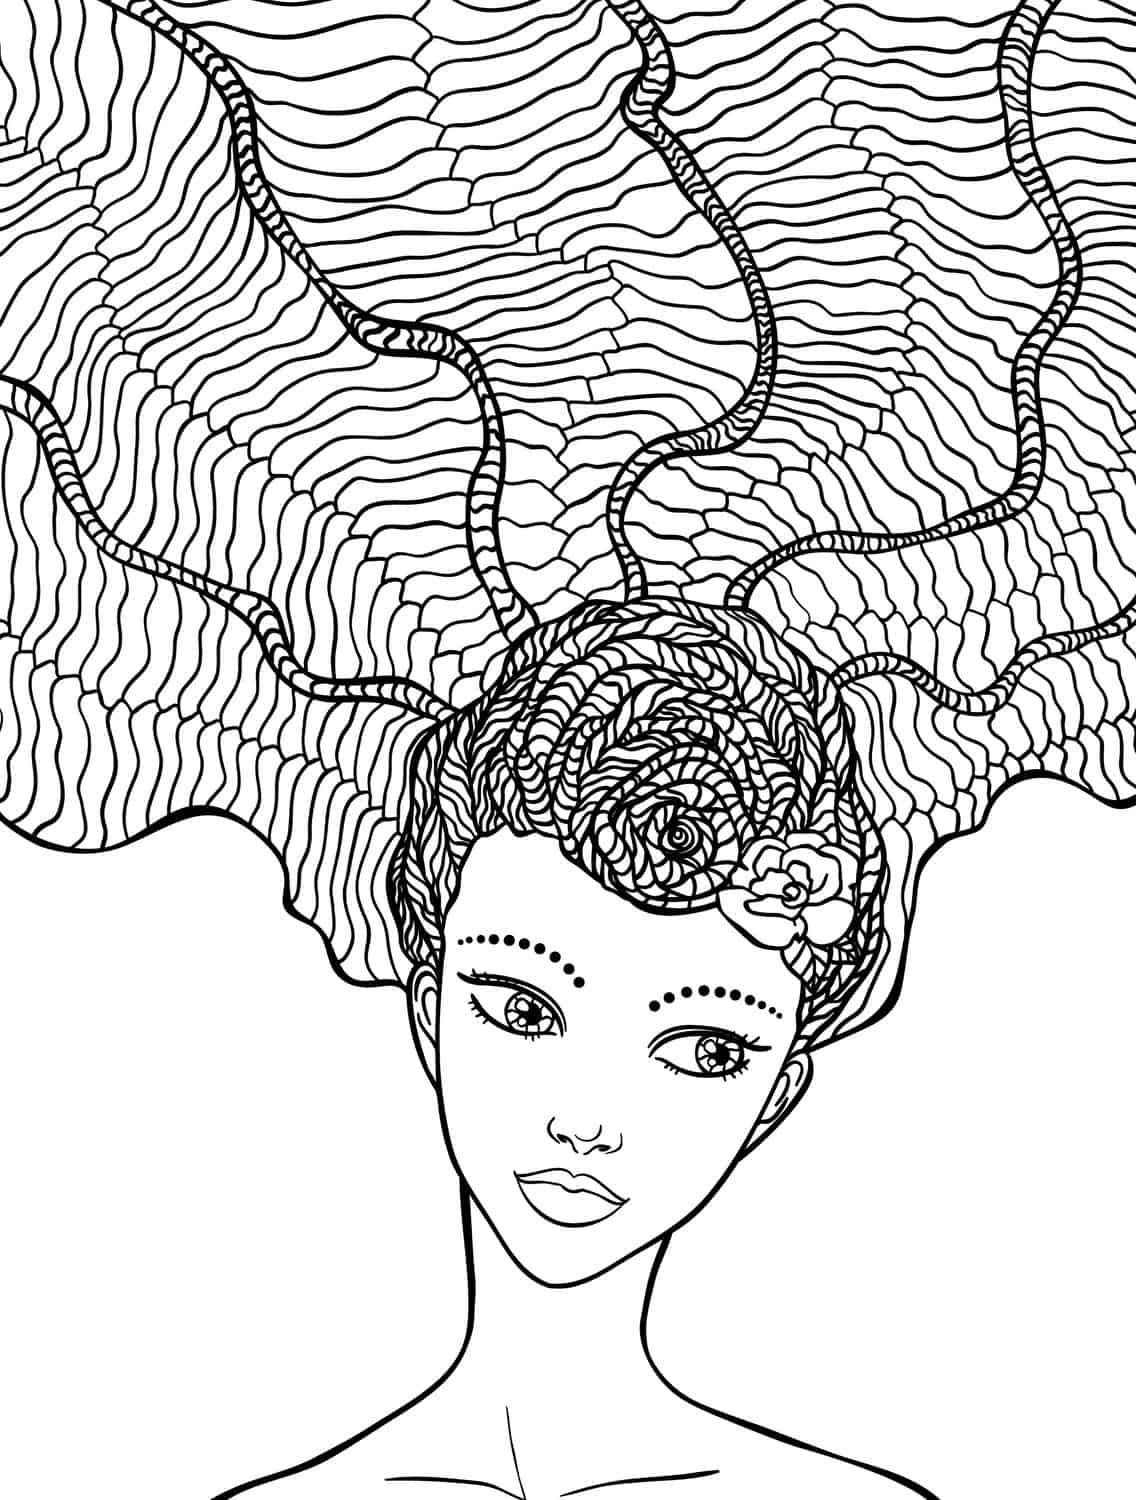 10 crazy hair adult coloring pages - page 3 of 12